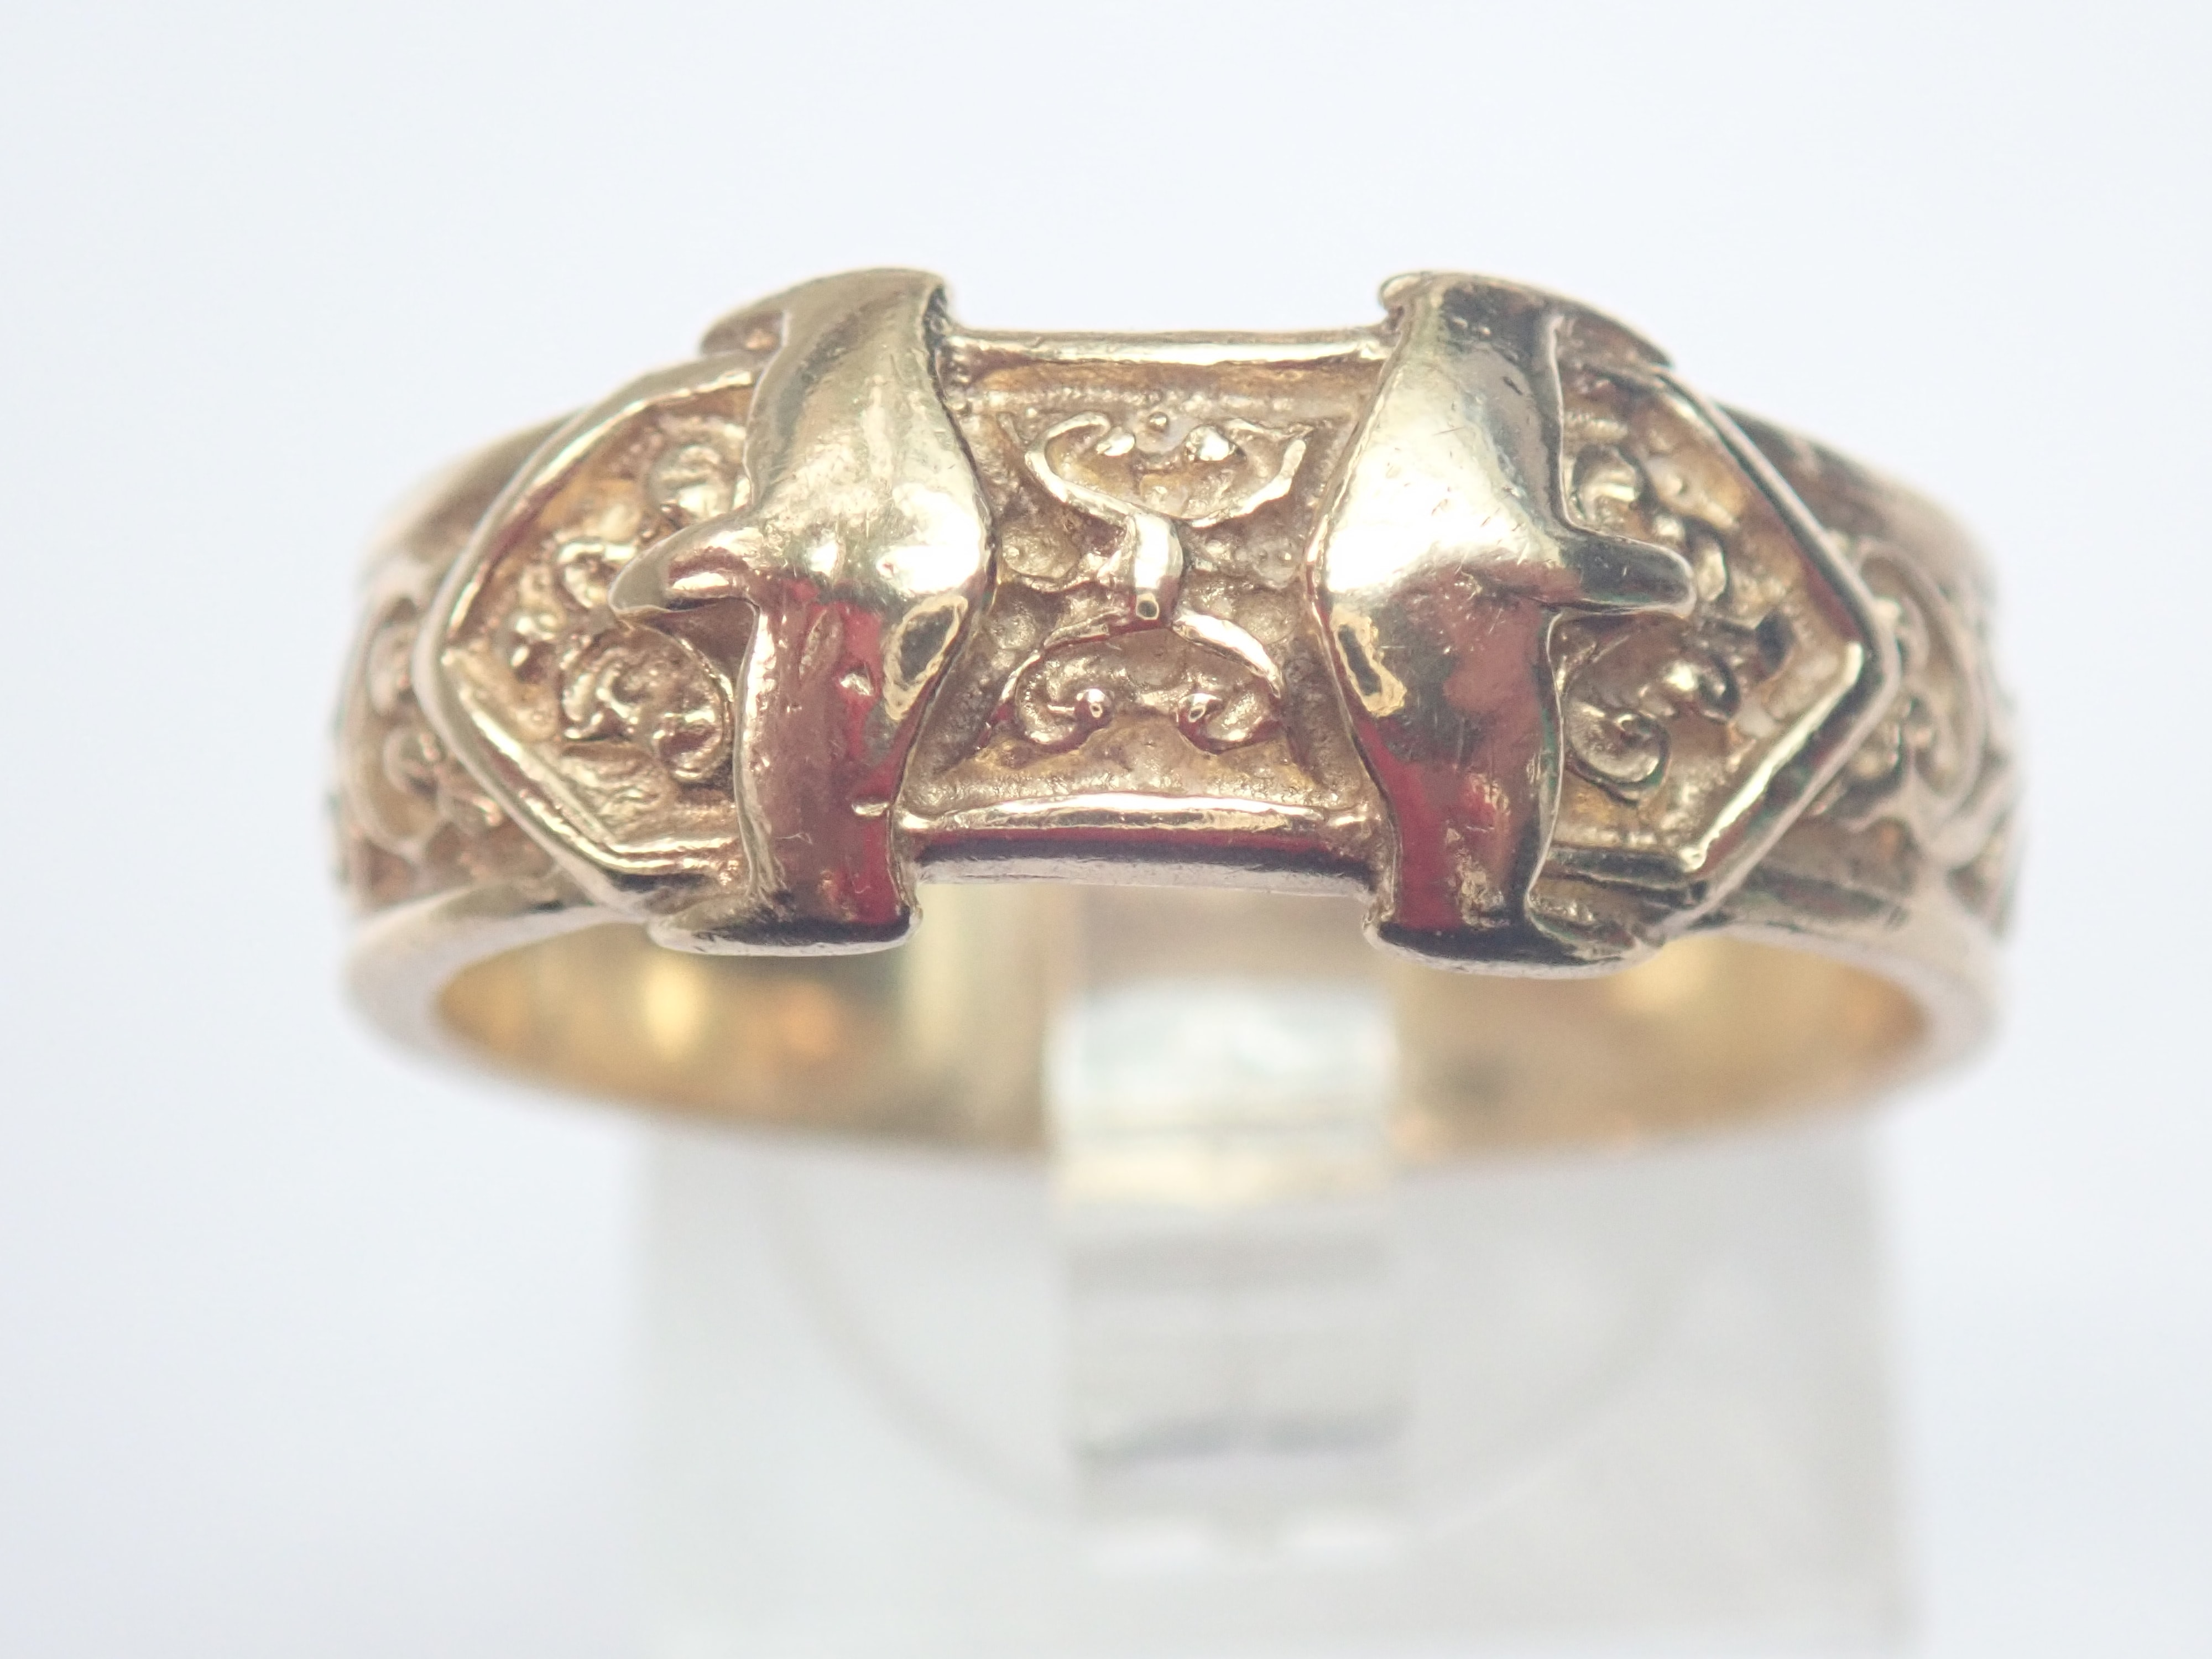 AZZ00609 - Vintage!! 9ct Gold Double Buckle Ring 6.3gms Size U1/2 #145